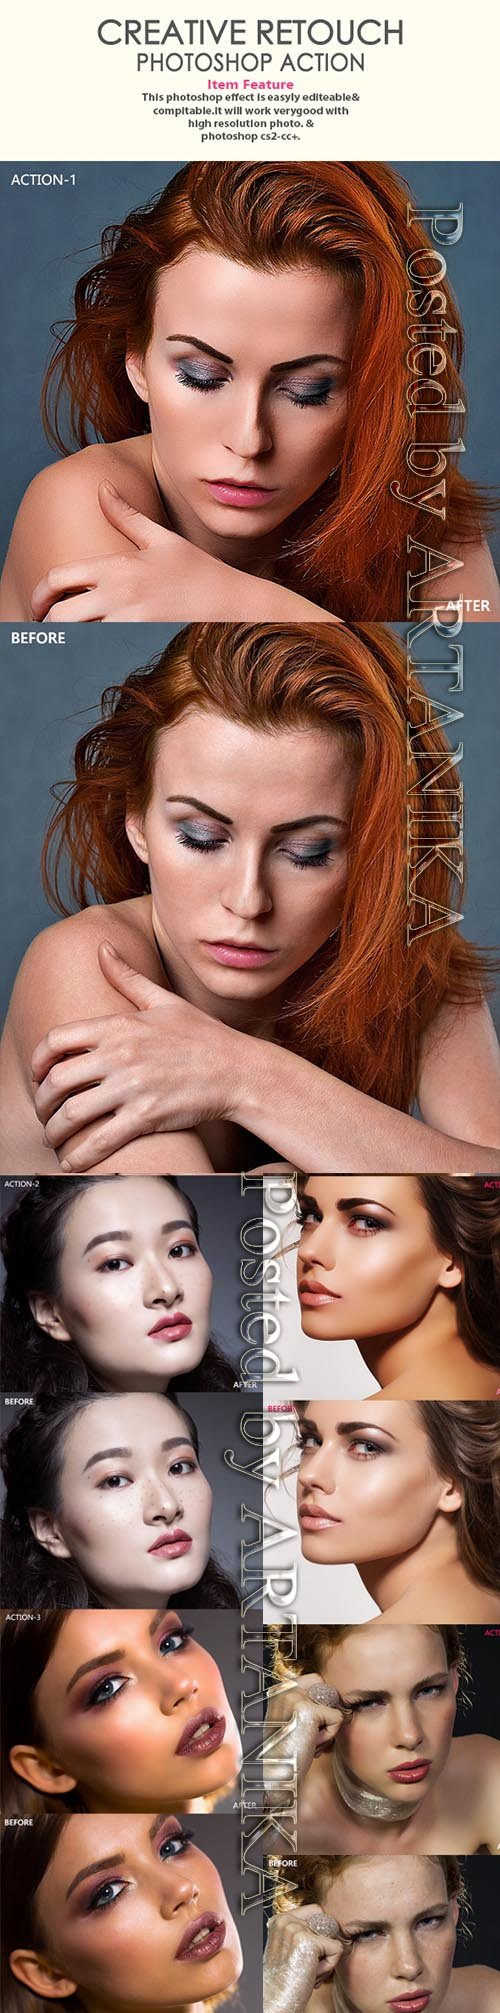 Creative Retouch Photoshop Action Photo Effects 21405013